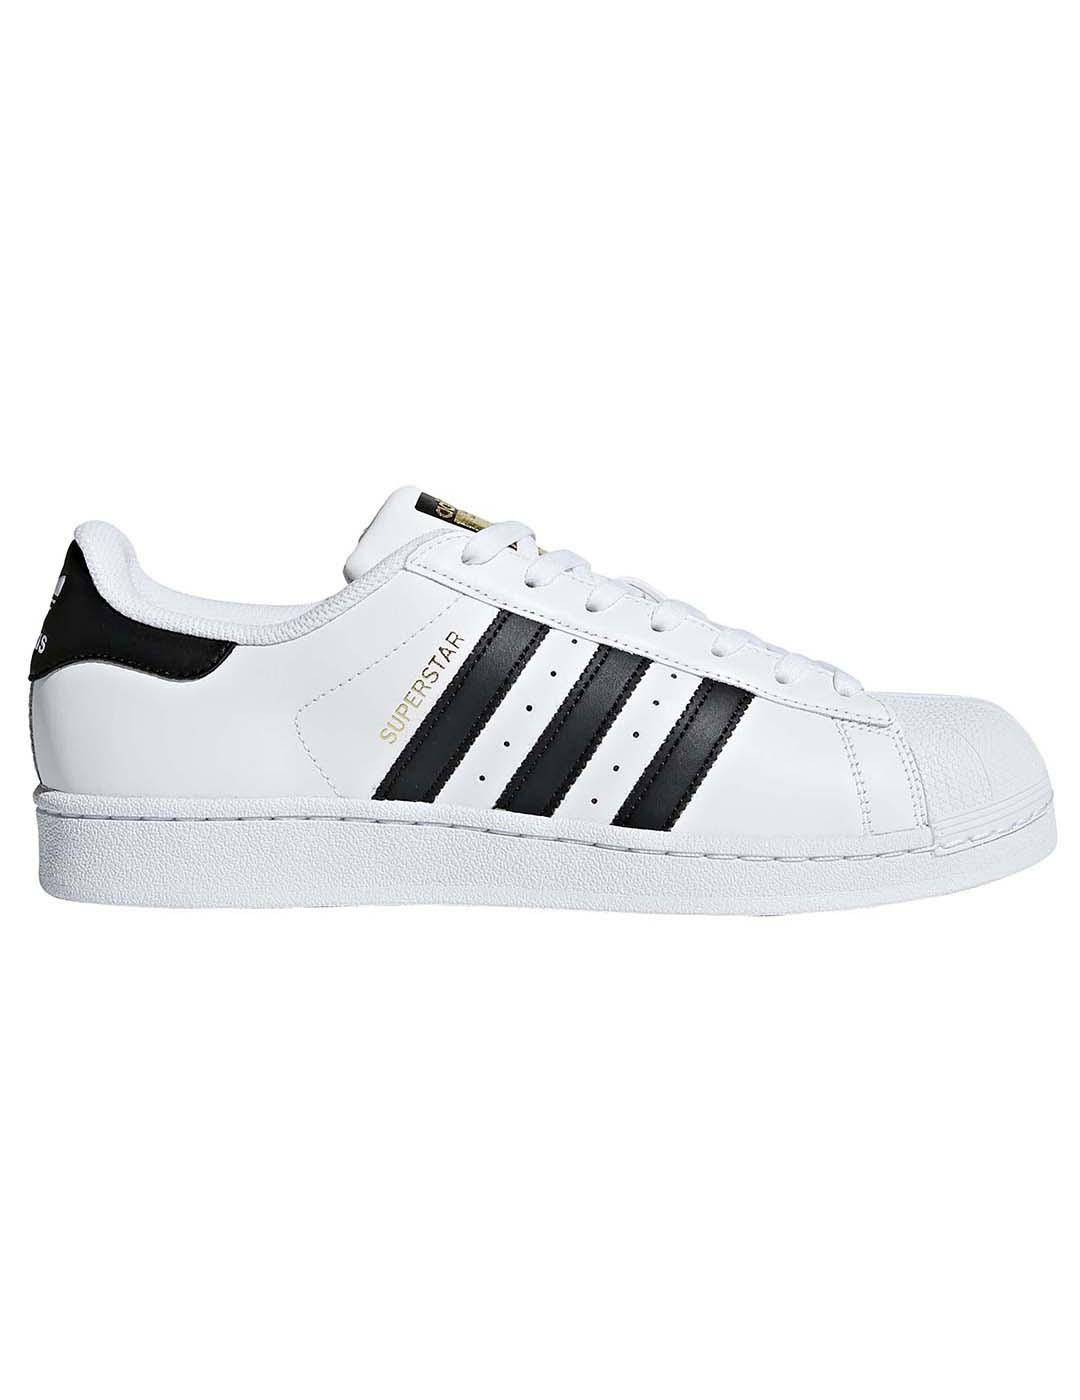 Adidas Zapatillas Adidas Superstar Blanco/negro - 44 2/3